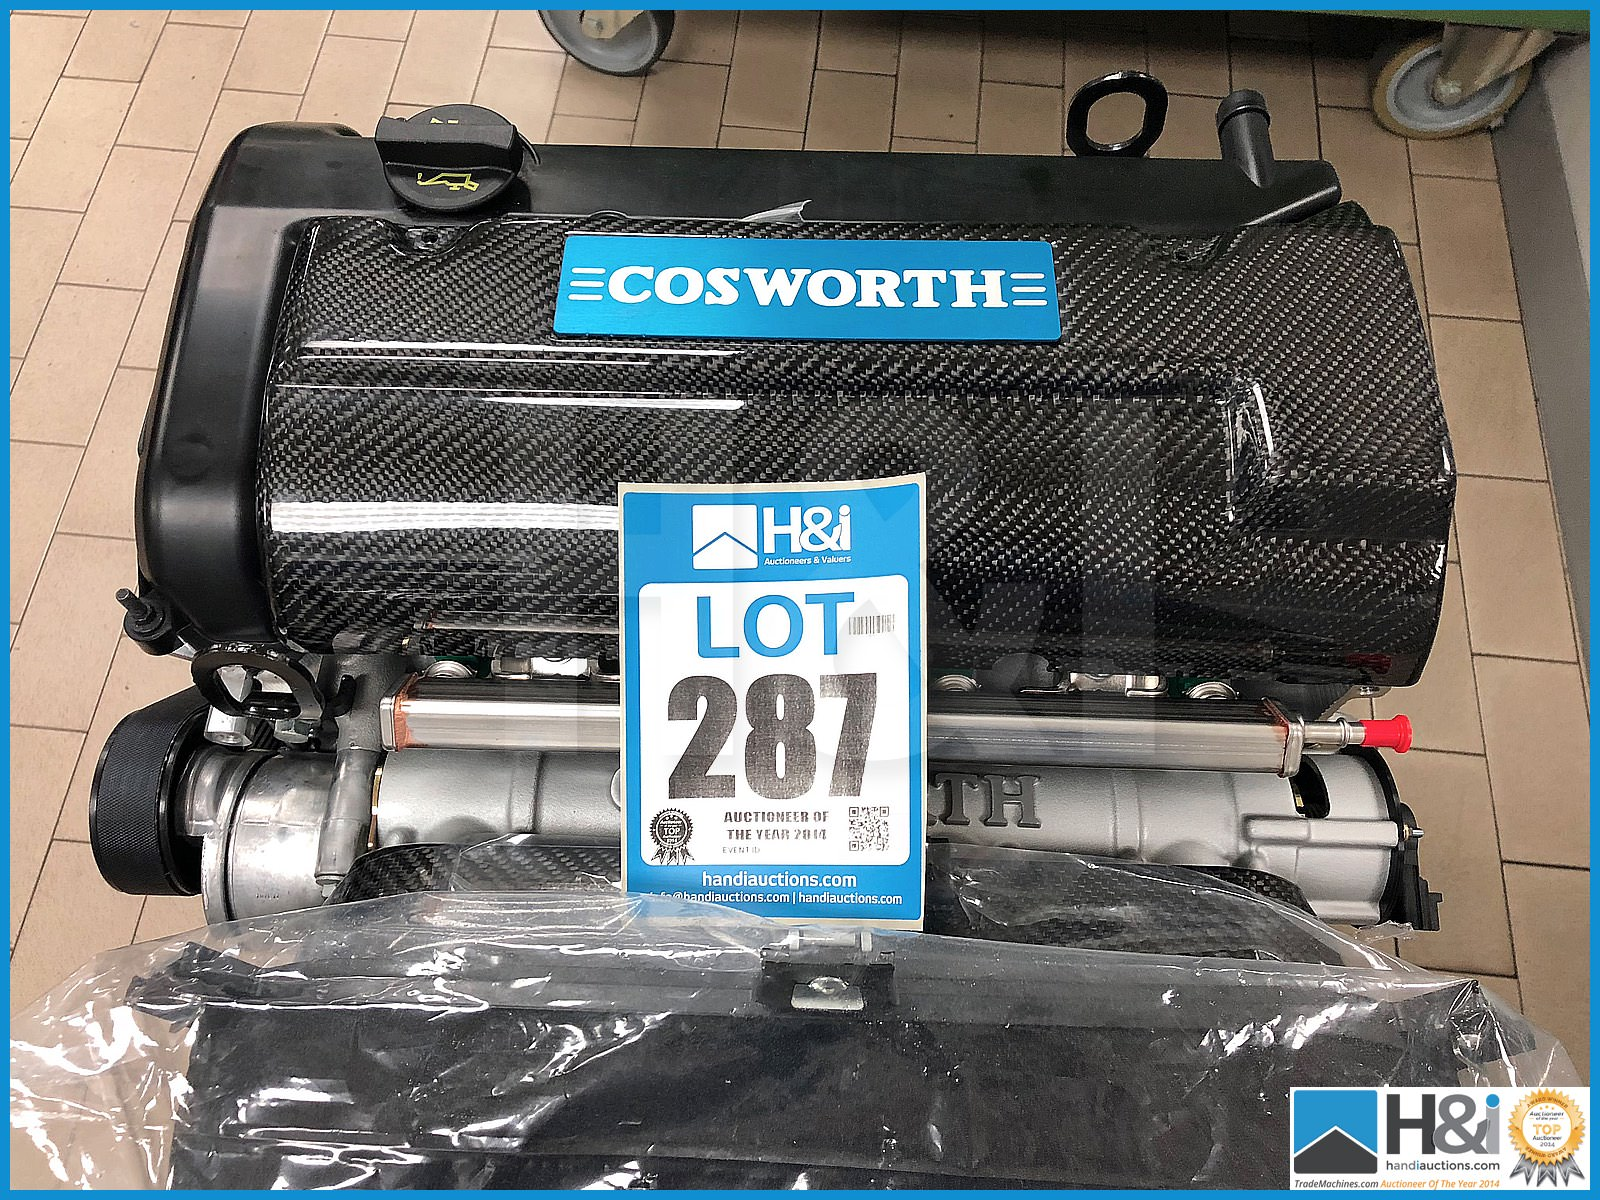 Lot 259 - Limited edition, brand new Cosworth Duratec 2.0L 255 BHP engine. This is one of only 12 engines to b